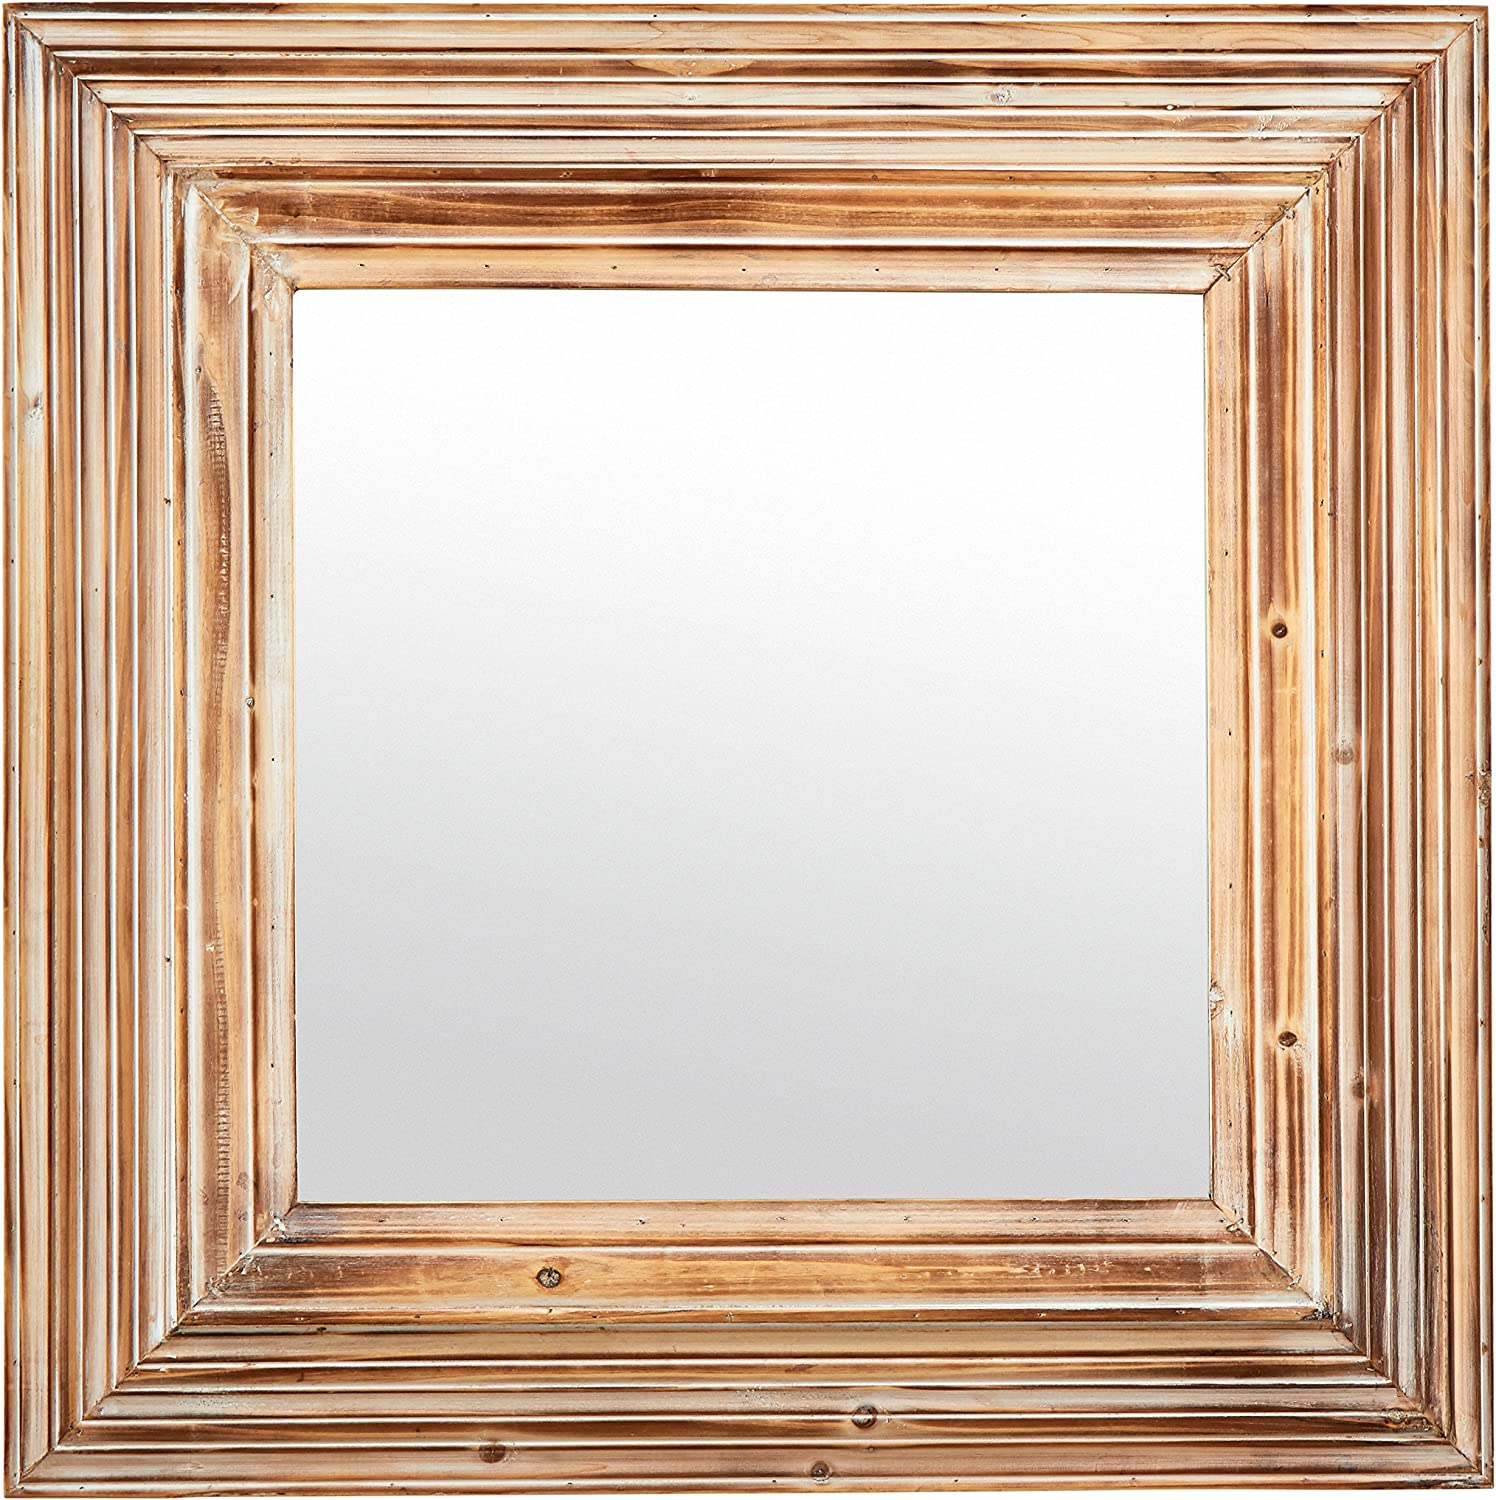 Stone & Beam Vintage-Look Square Mirror, 39.5  H, Tan and White